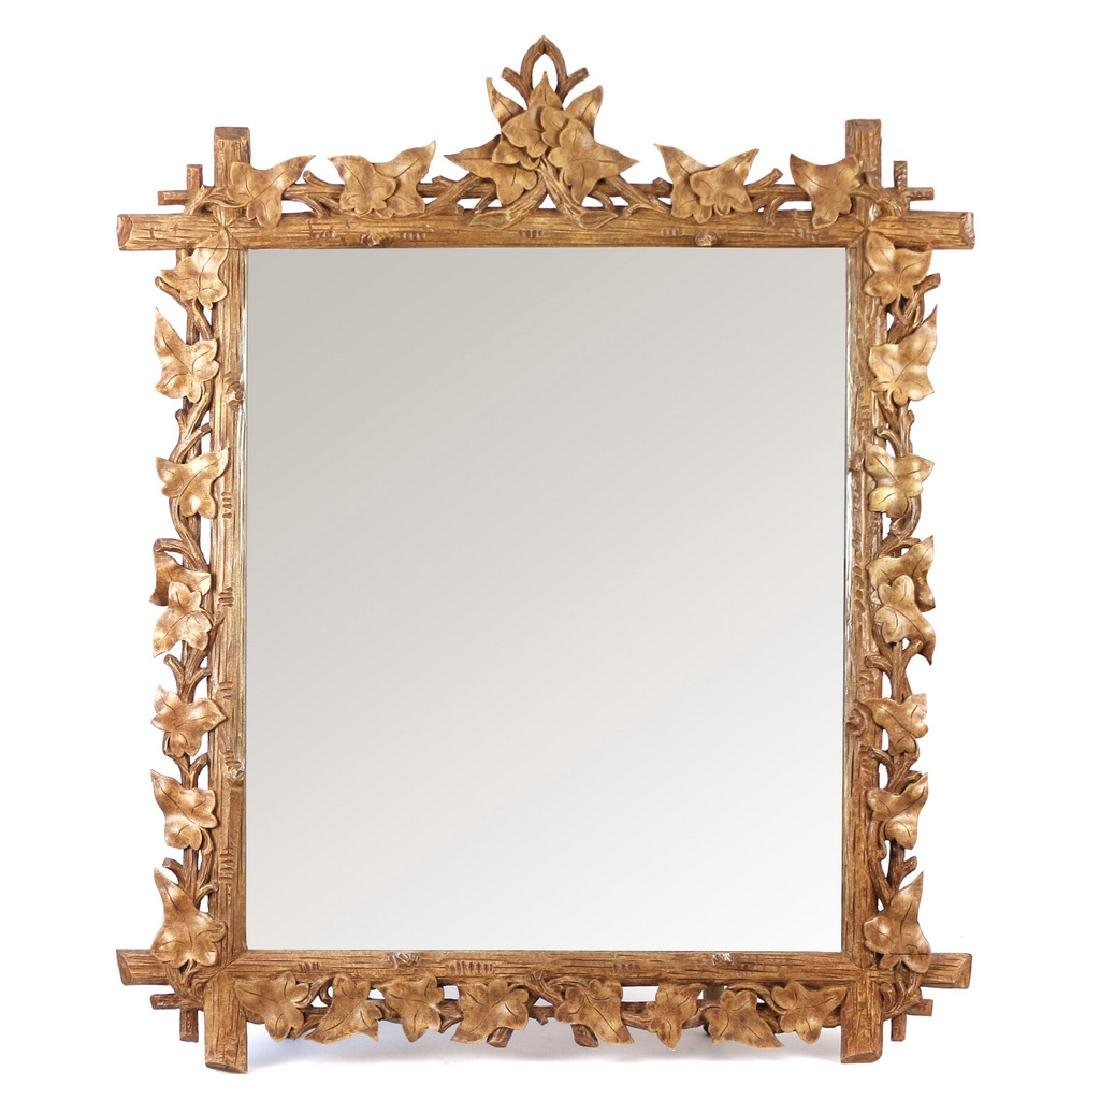 PAIR NATURALISTIC CARVED WOOD MIRRORS - 2